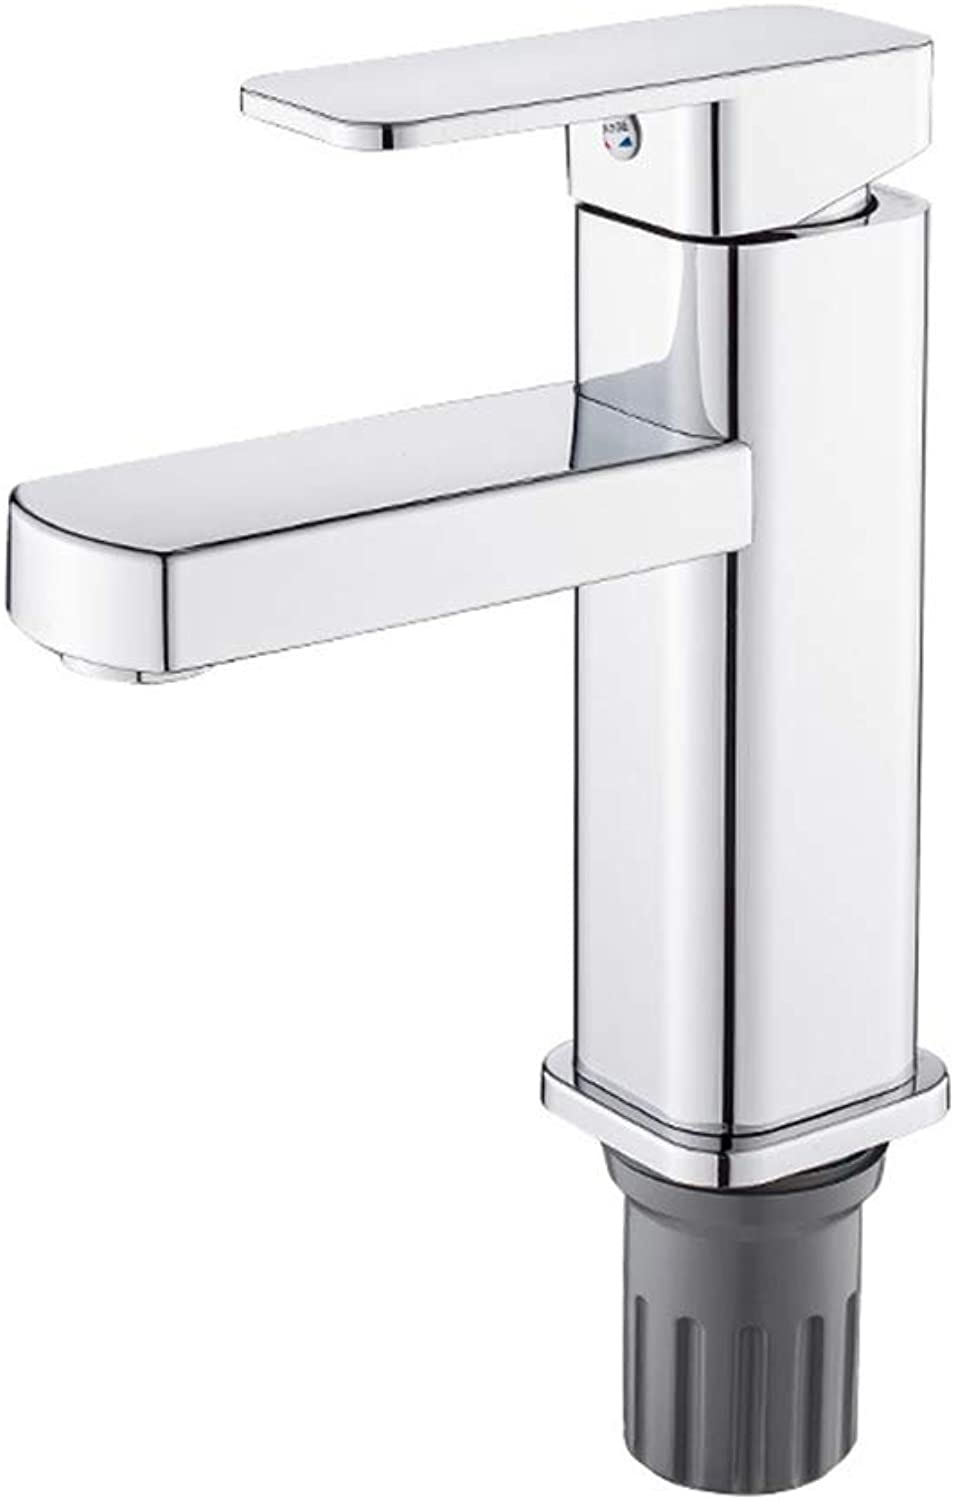 Taps Basin Mixer, Modern Copper Single Lever Bathroom Sink Hot Cold Faucet Chrome Finish Cold and Hot